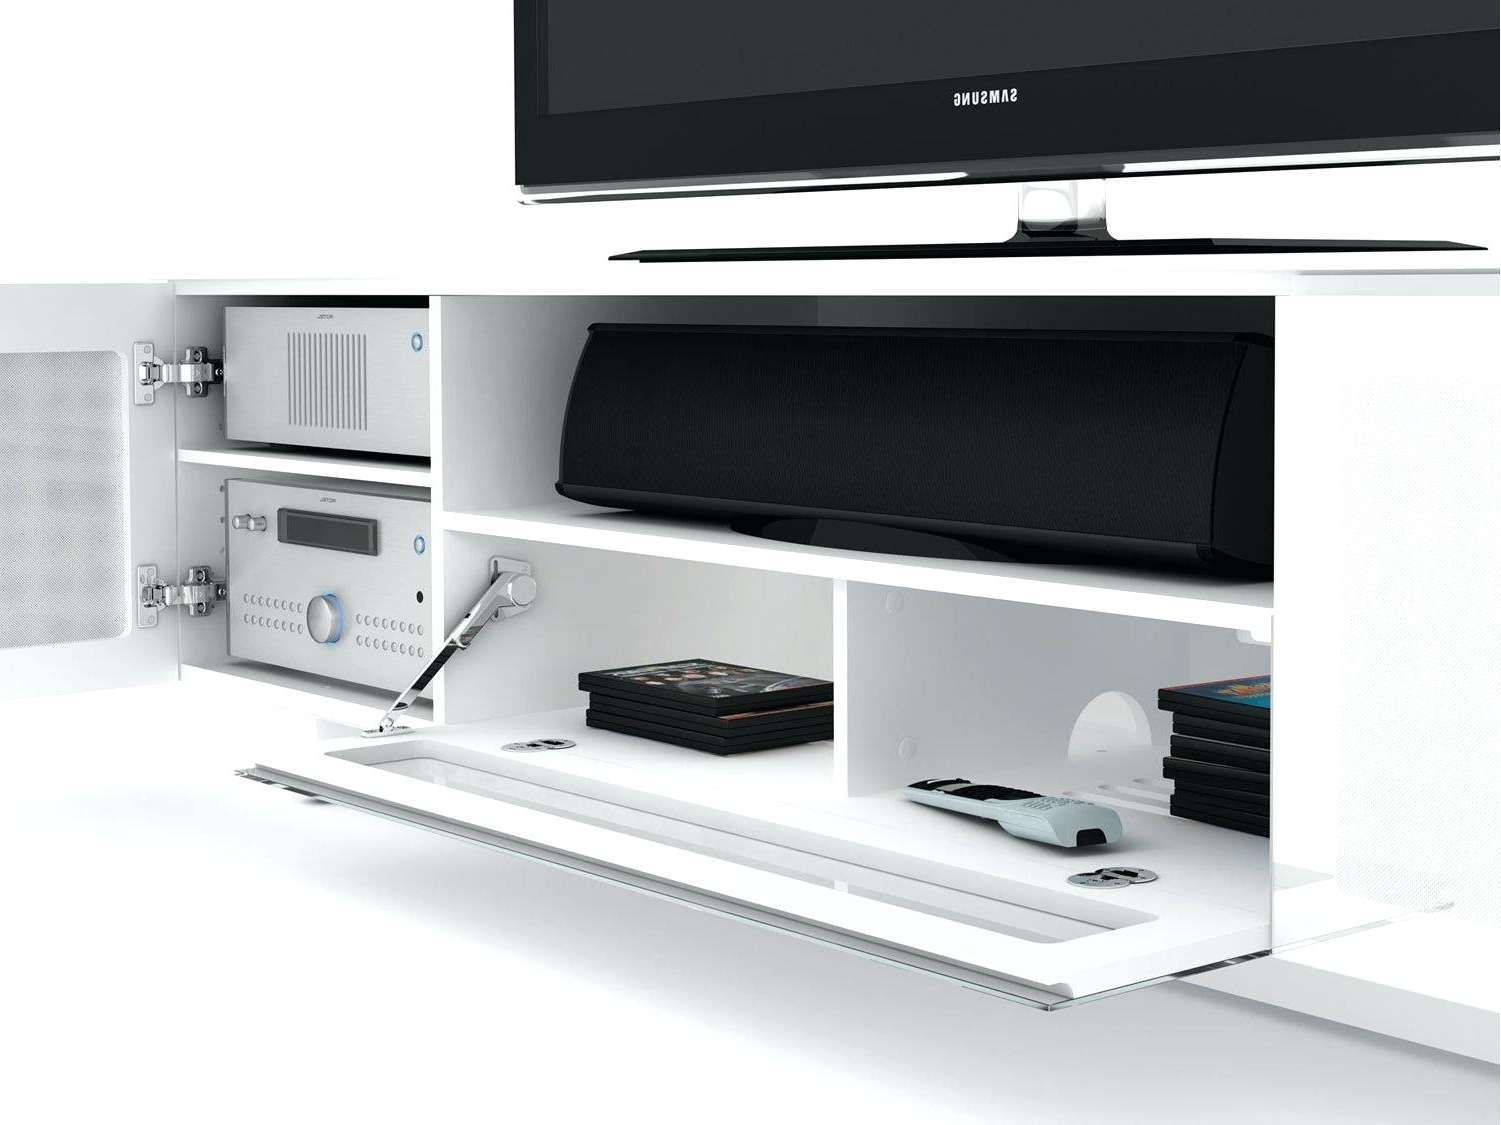 Tv Stand : Glossy White Tv Stand Gloss With Led Lights Glossy Pertaining To Glossy White Tv Stands (View 11 of 15)